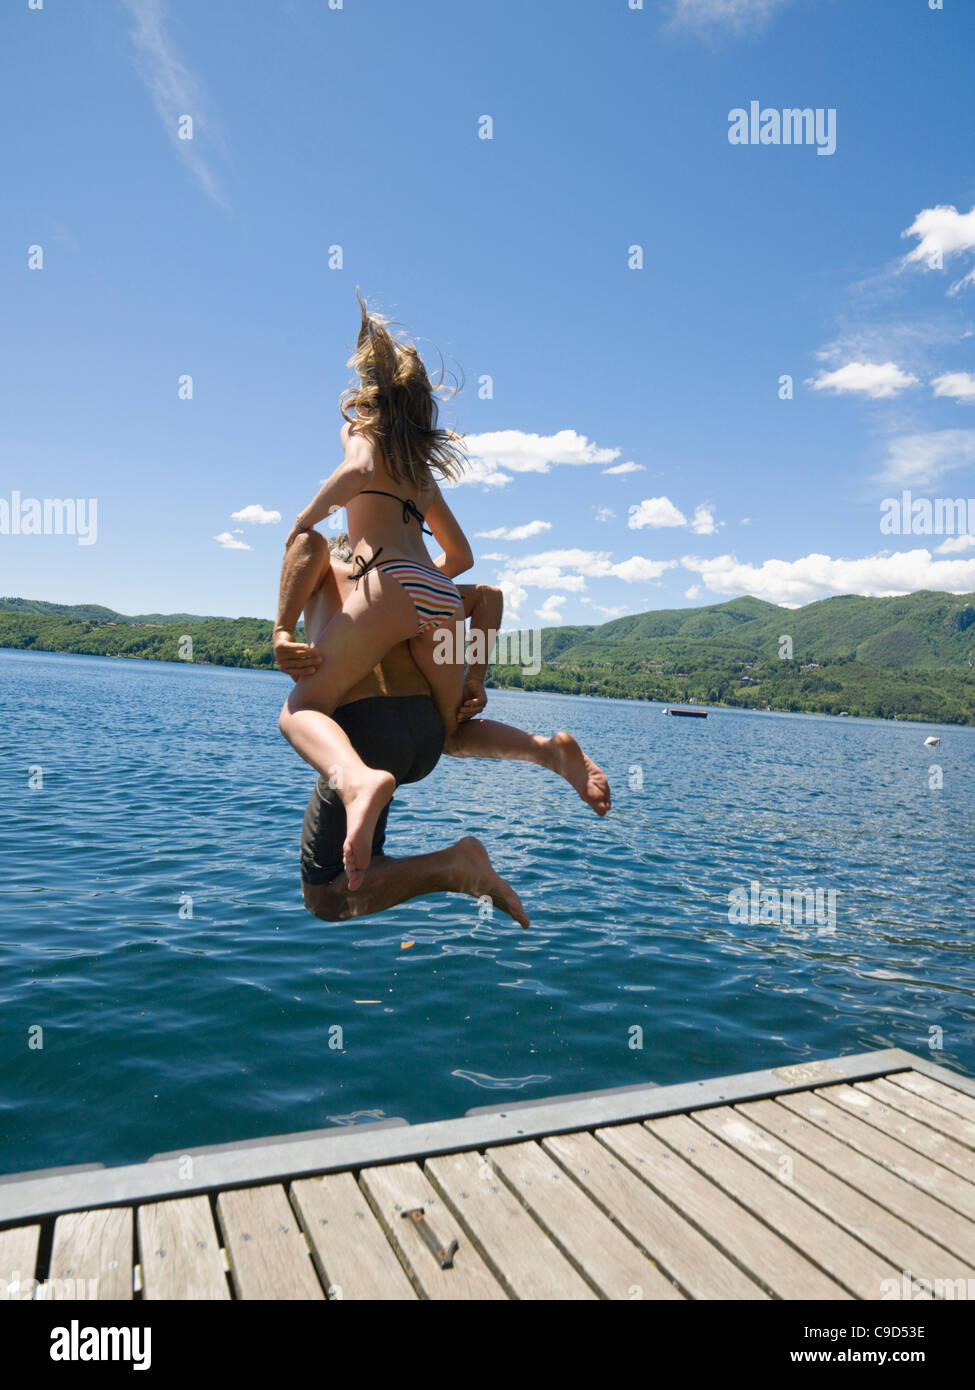 Italy, piedmont, Rear view of father and daughter (14-15) jumping off wooden wharf into Lake Orta - Stock Image